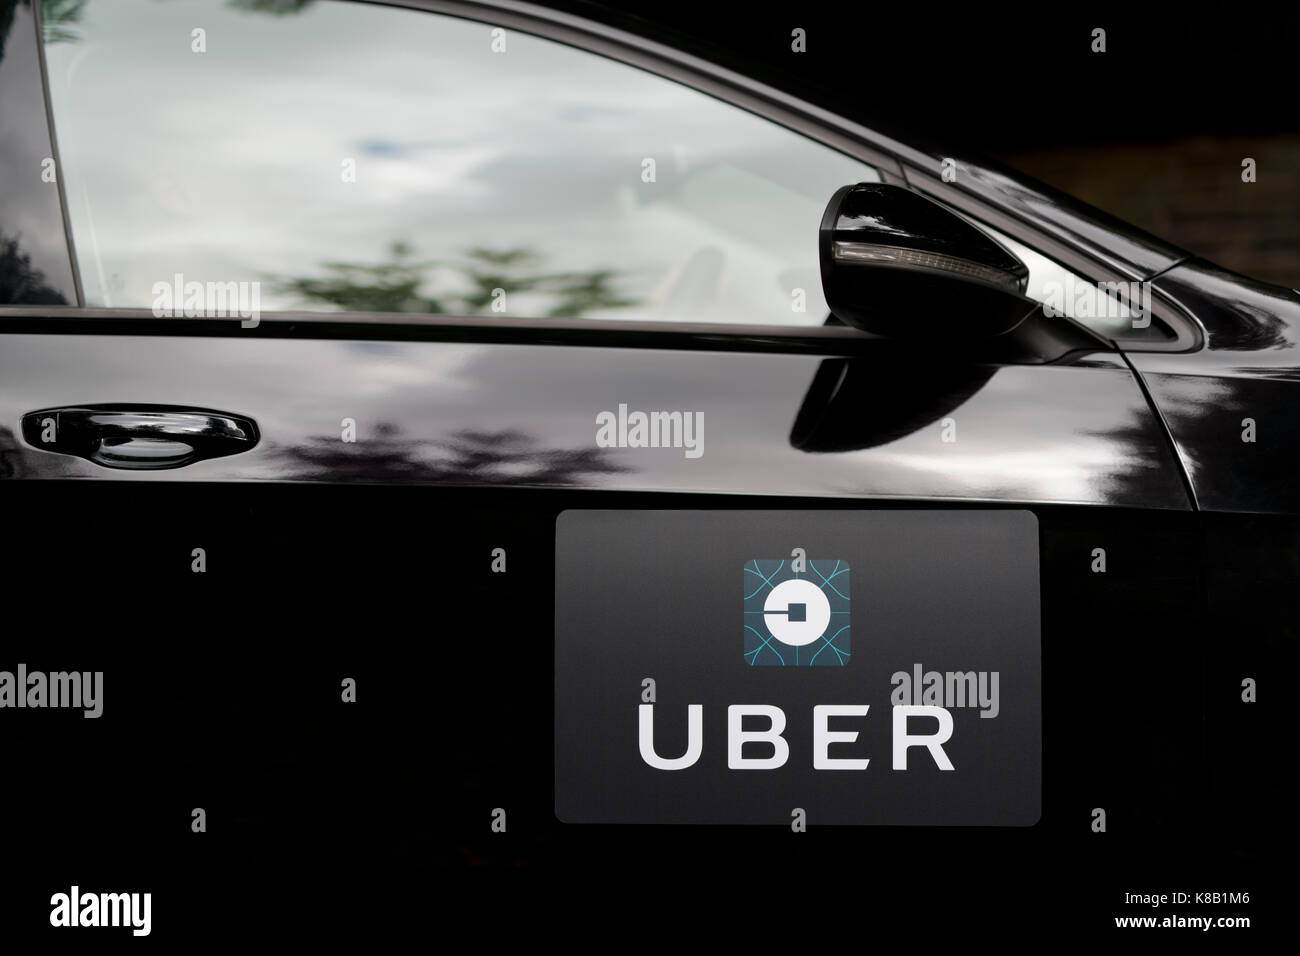 A black Volkswagen featuring the Uber logo is used as a taxi and also shows a driver in a leafy suburban street - Stock Image